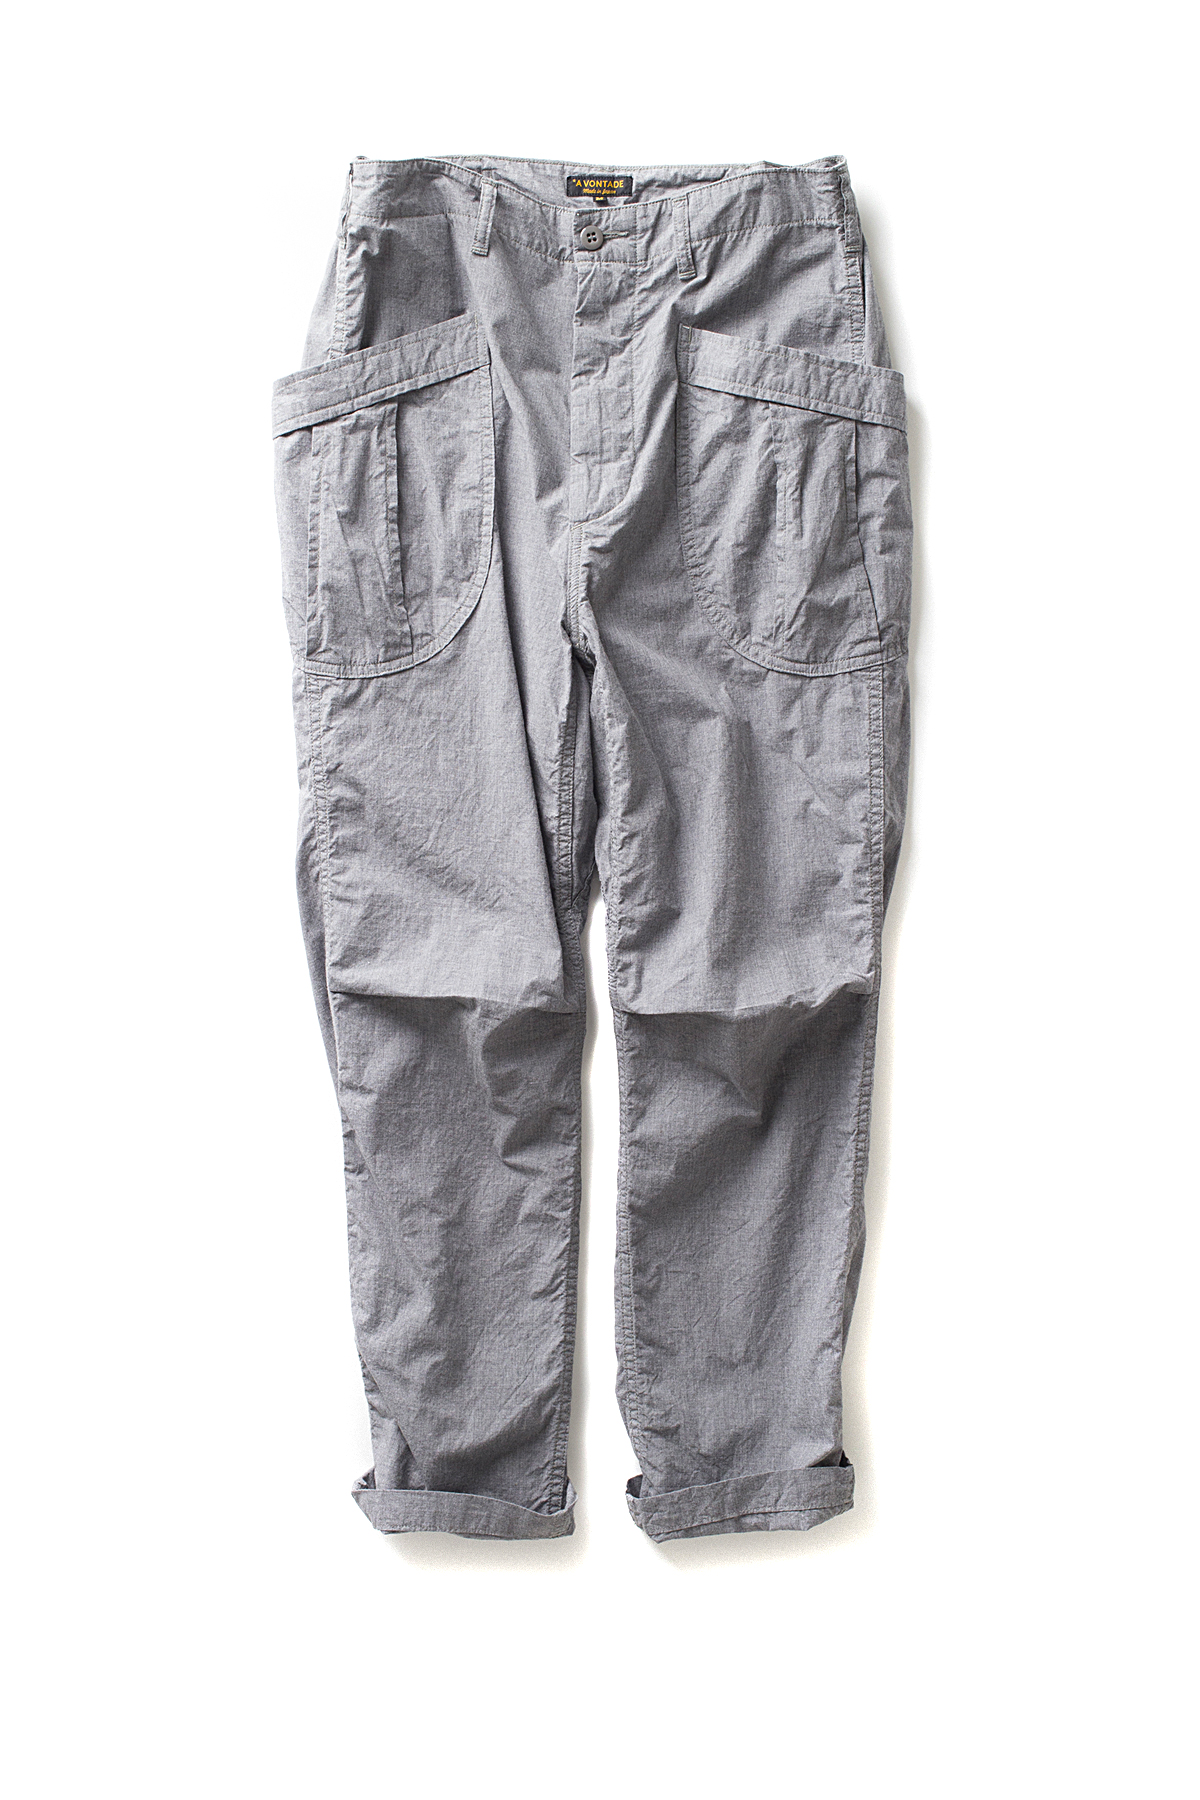 A vontade : Fatigue Trousers Ripstop (Grey Top)